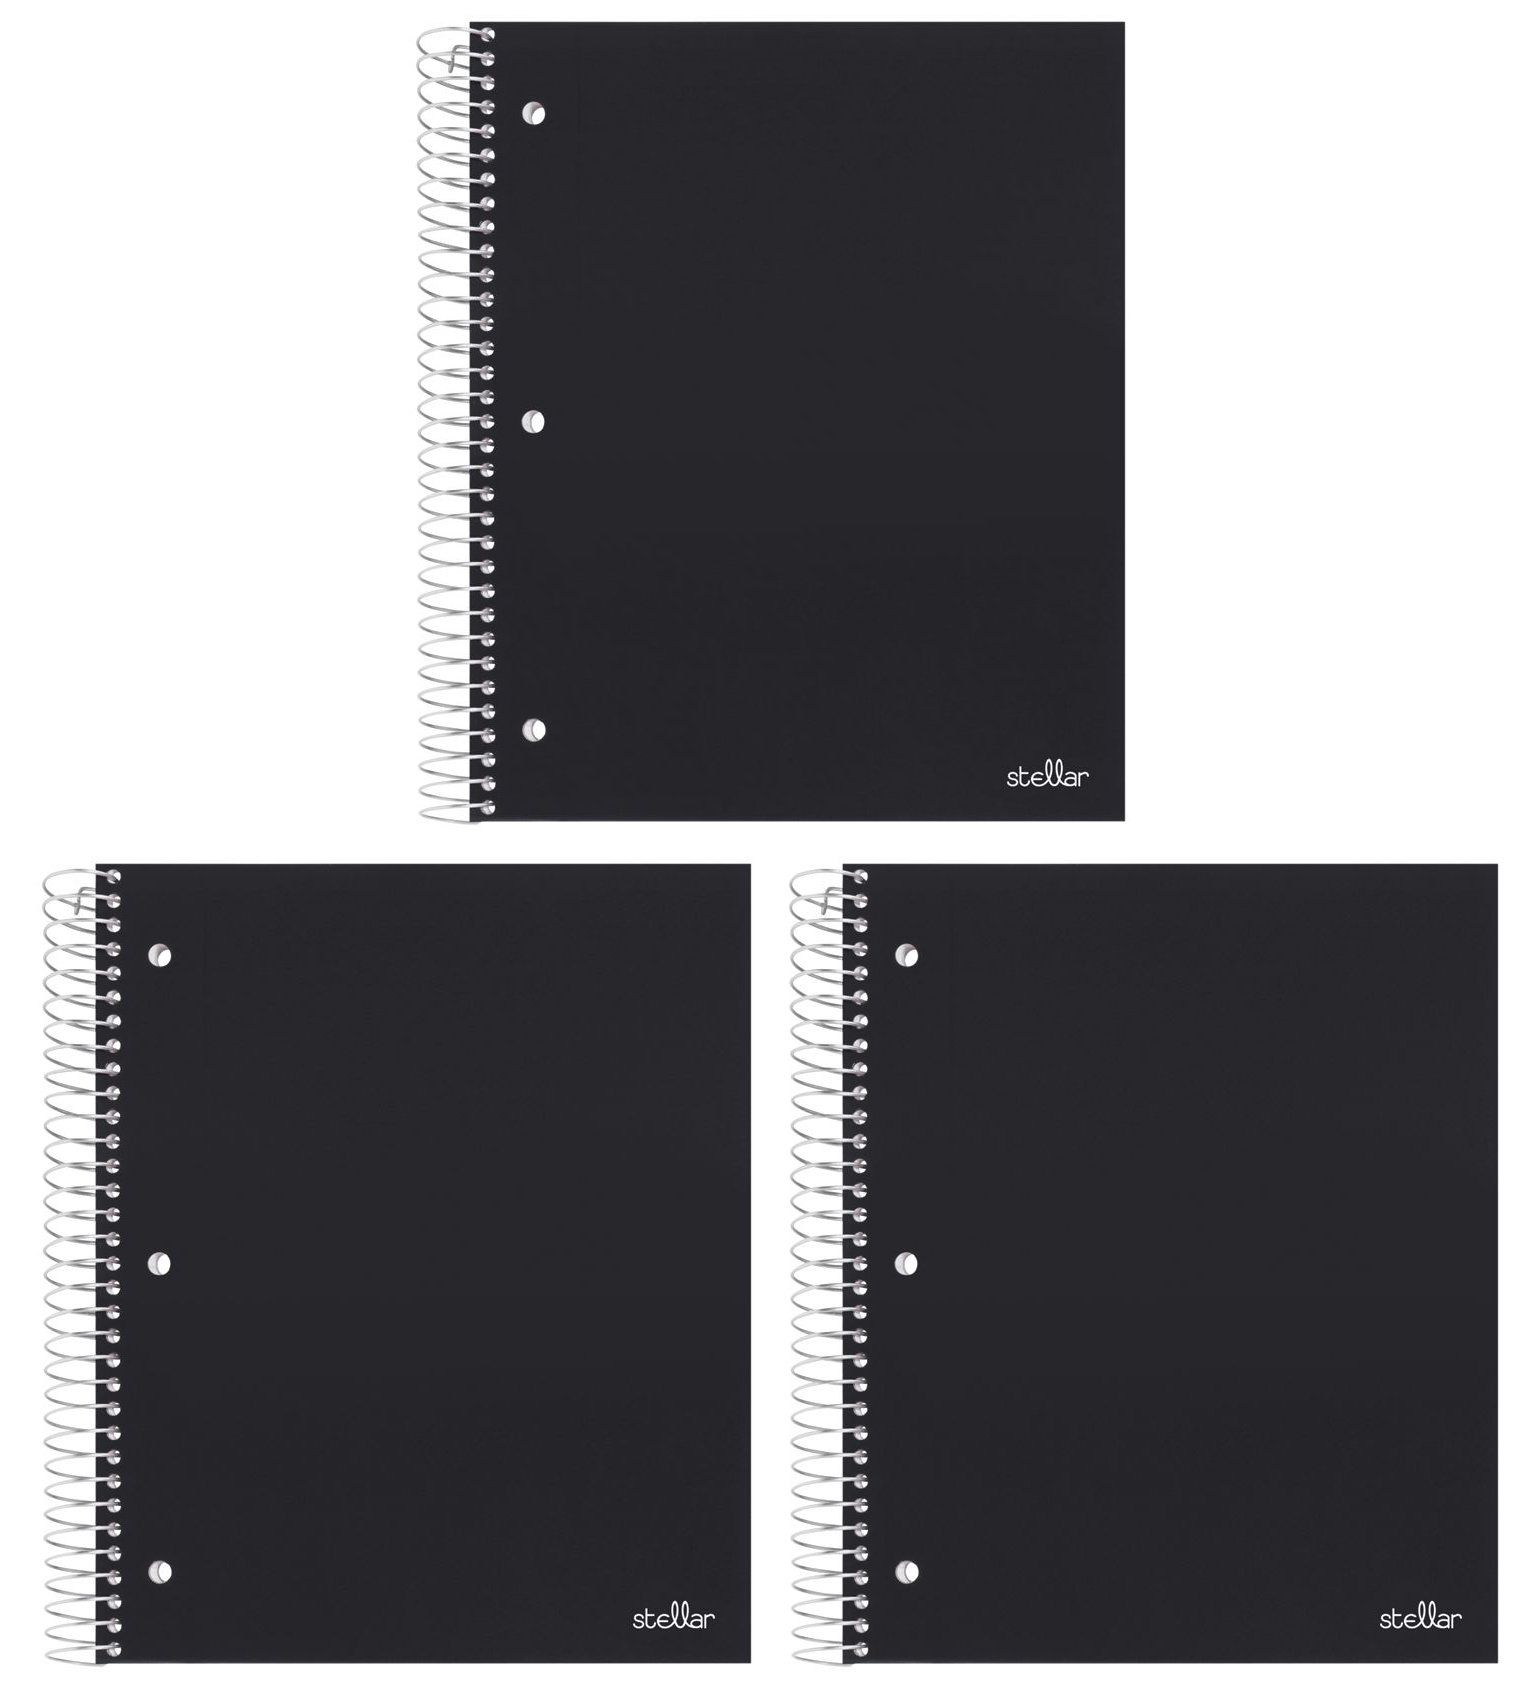 Stellar Wide Ruled Notebook, 1-Subject, 1 Poly Pocket Divider, 8 x 10-1/2-inches, 100 Sheets, 3 Pack (Black)